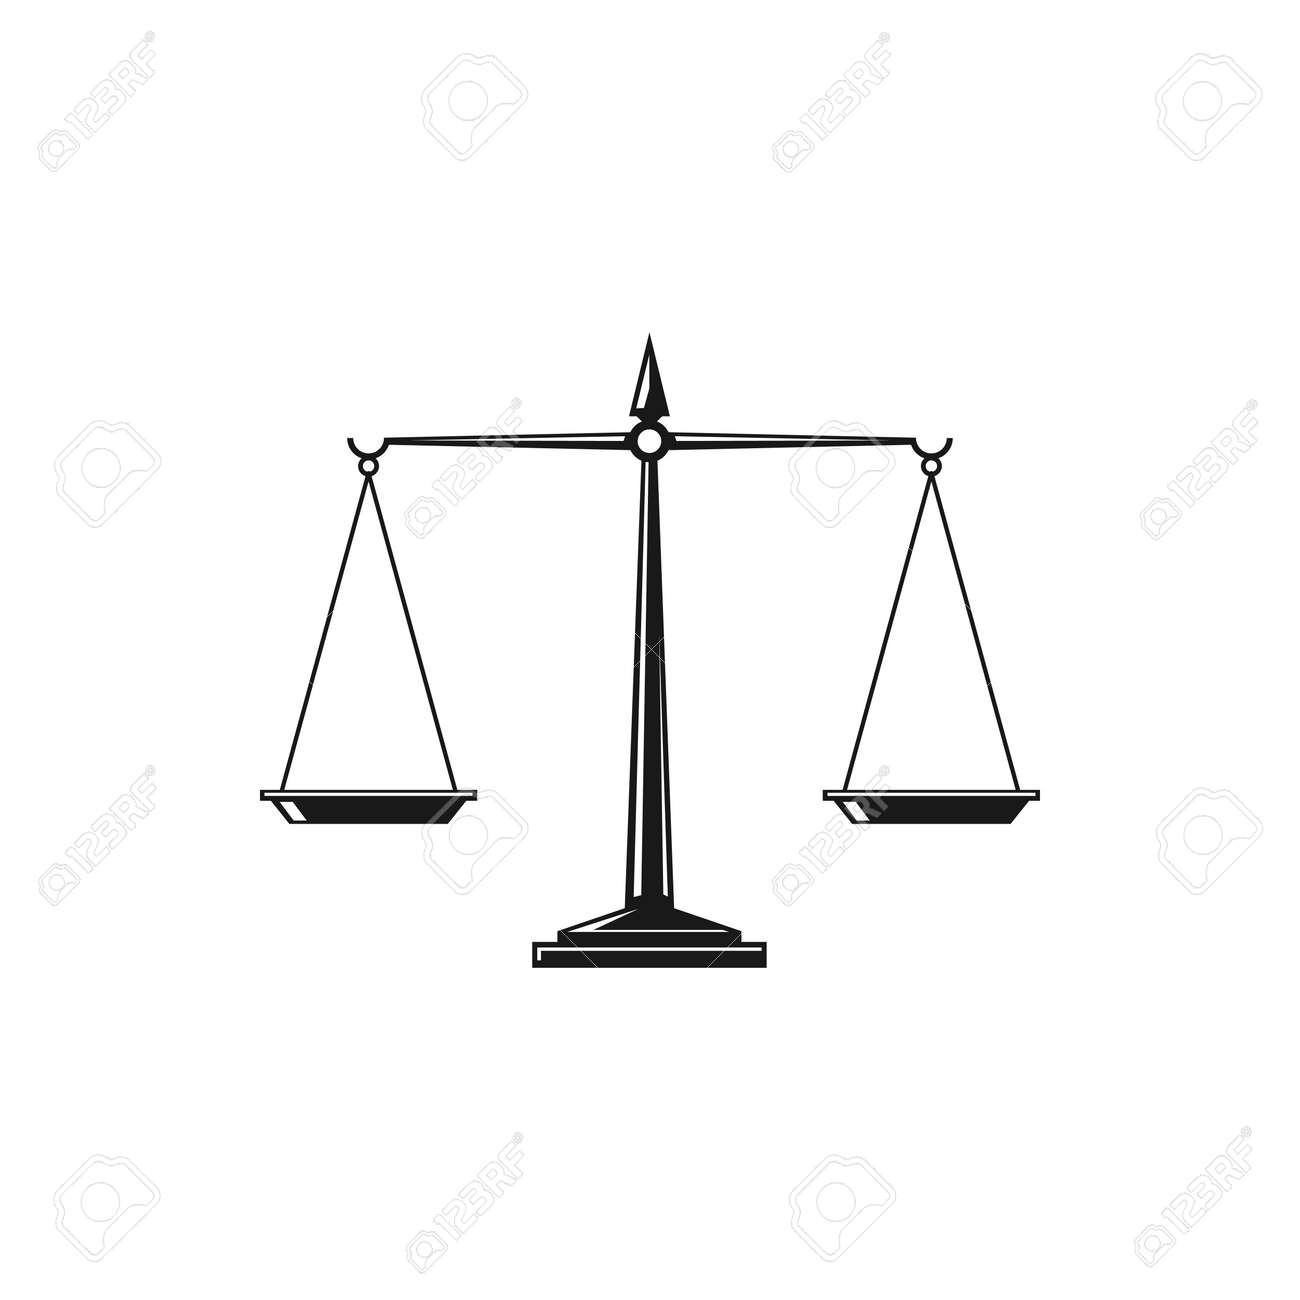 Scales isolated monochrome icon. Vector dual balance Themis scales of justice on decorative stand. Mechanical balancing scales, symbol of law and judgment, punishment and truth, measuring device - 165541137